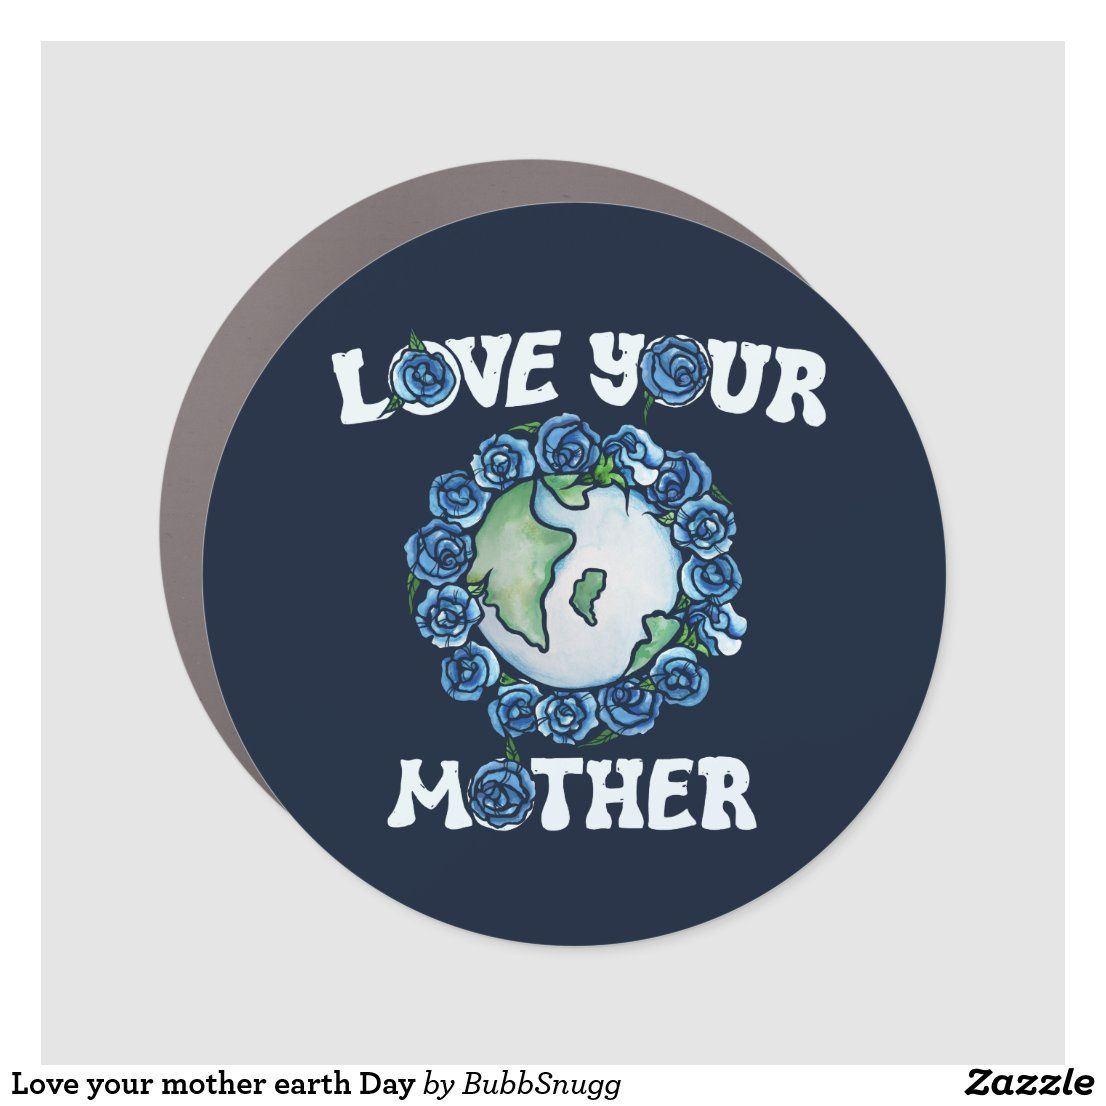 Love Your Mother Earth Day Car Magnet Zazzle Com In 2021 Mother Earth Earth Day Earth [ 1106 x 1106 Pixel ]